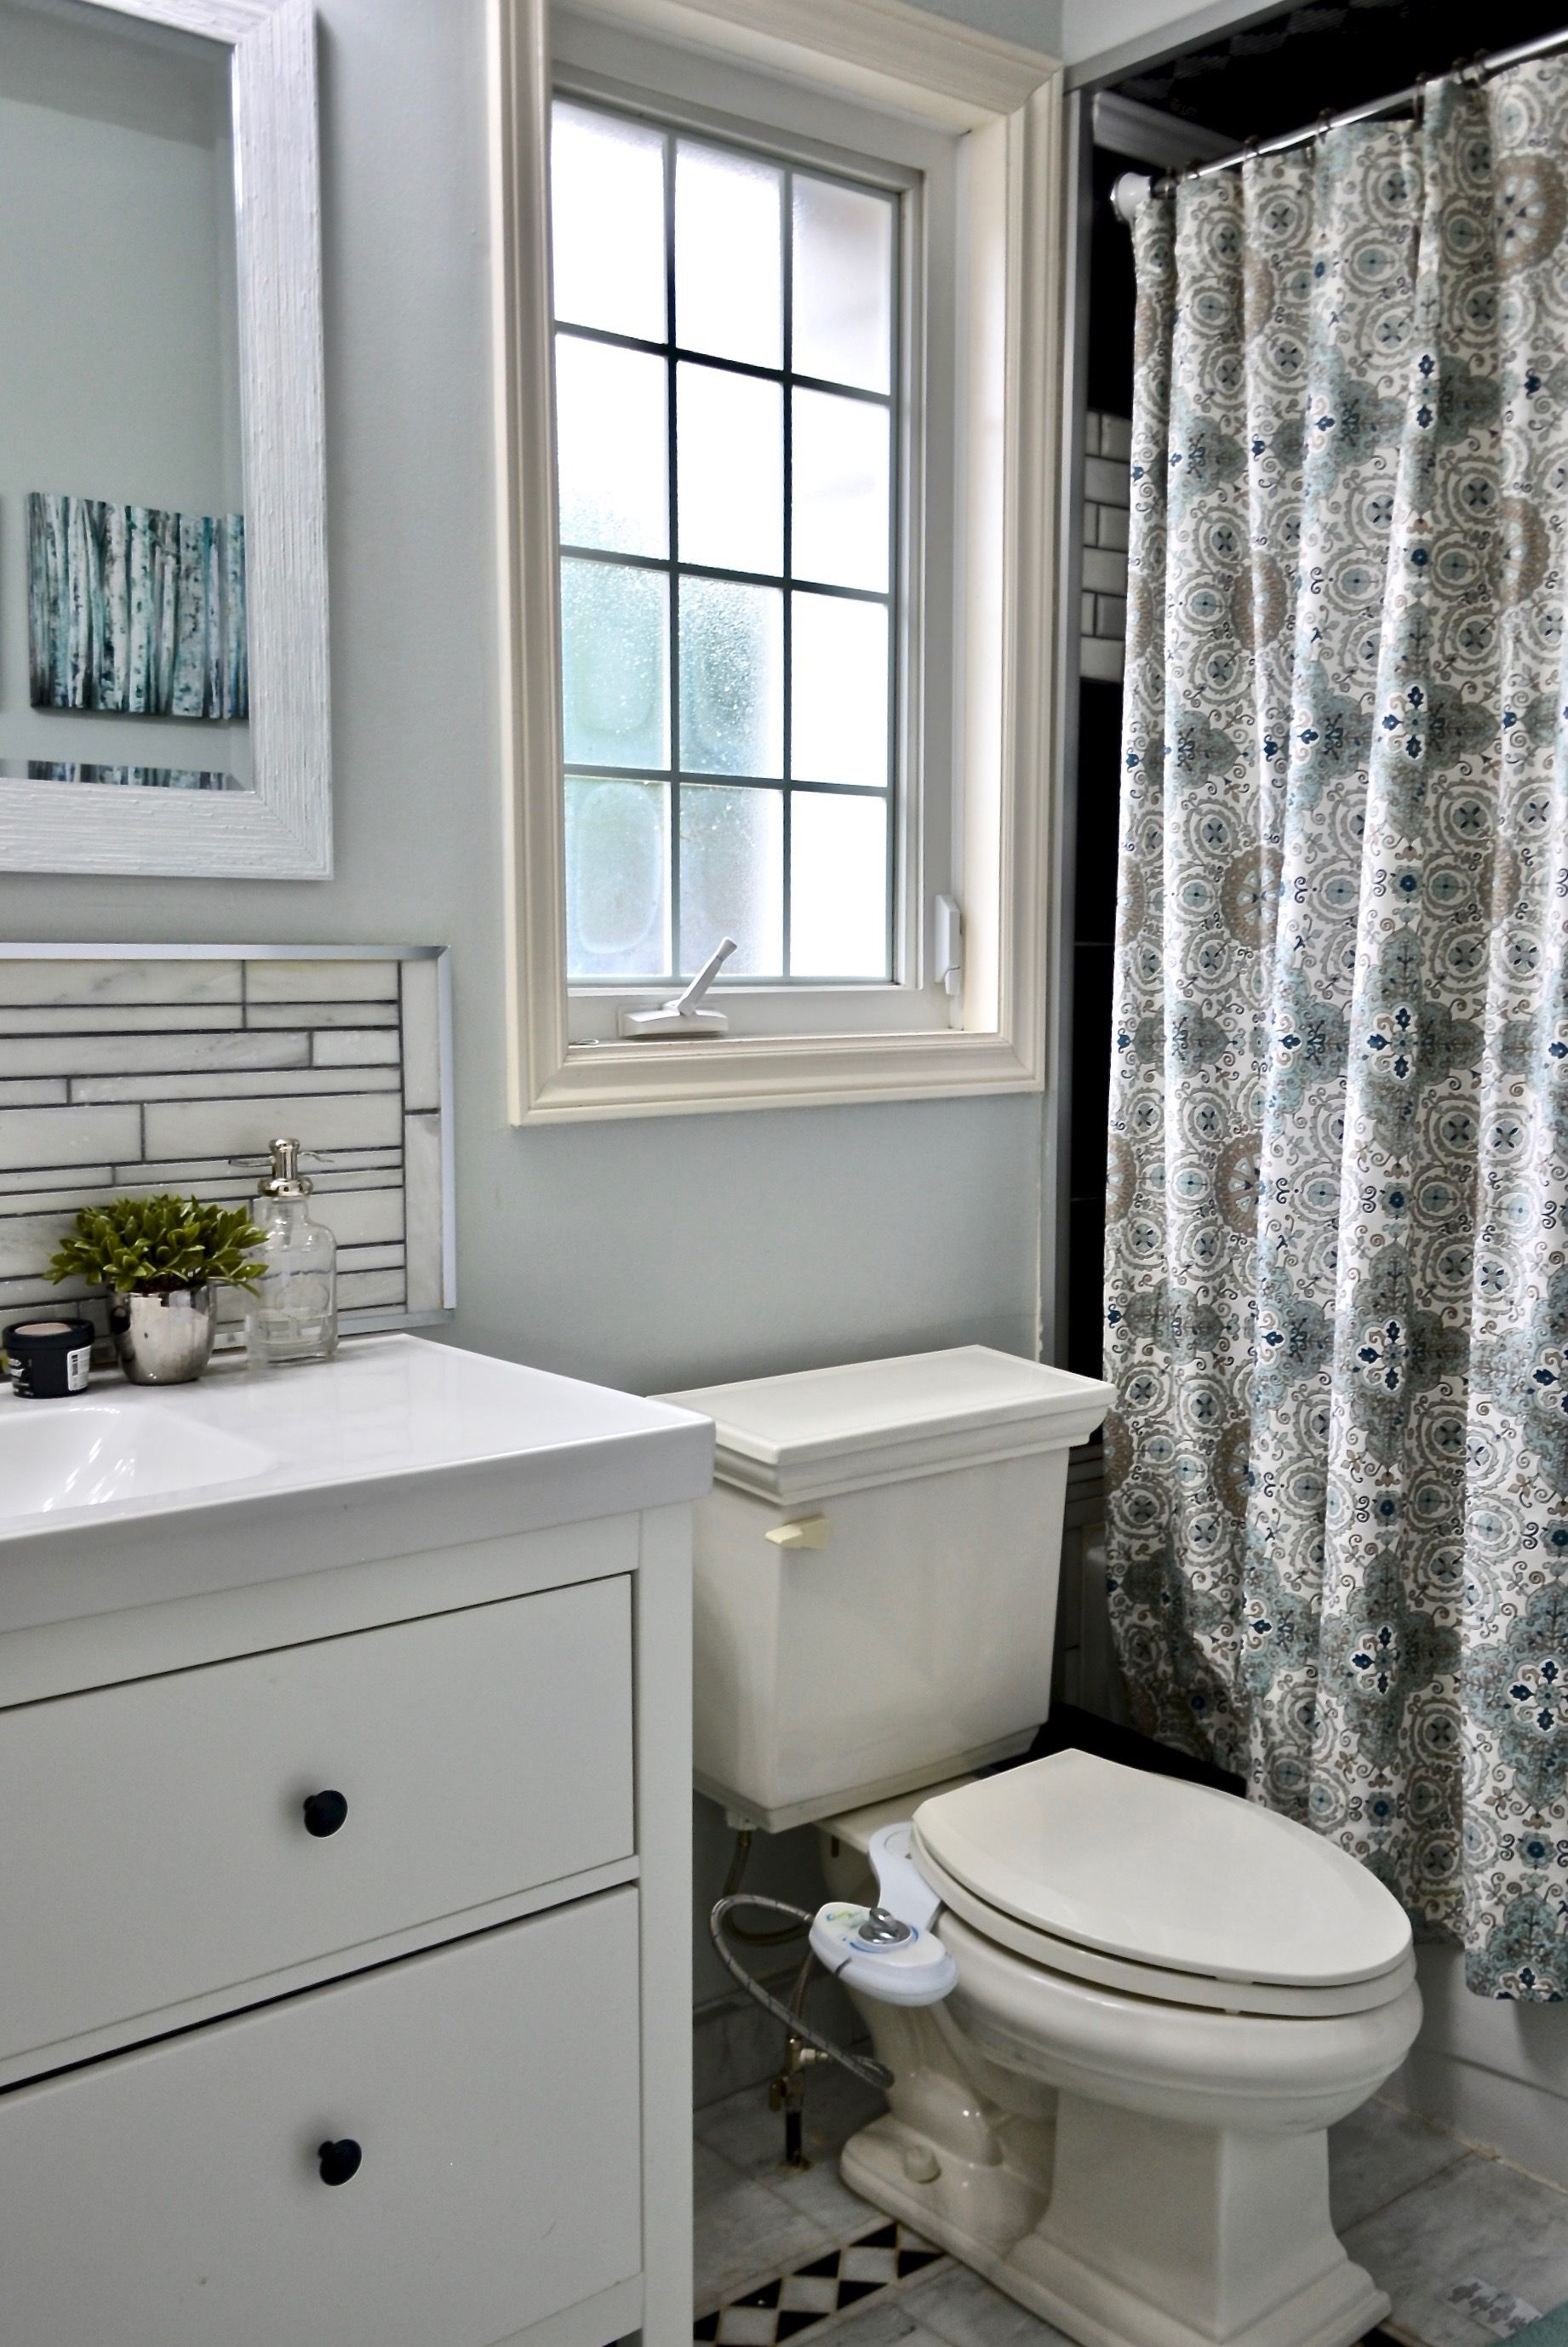 Modern Farmhouse Bathroom Design By Dominika Pate Interiors #Farmhouse #Farmhousedecor